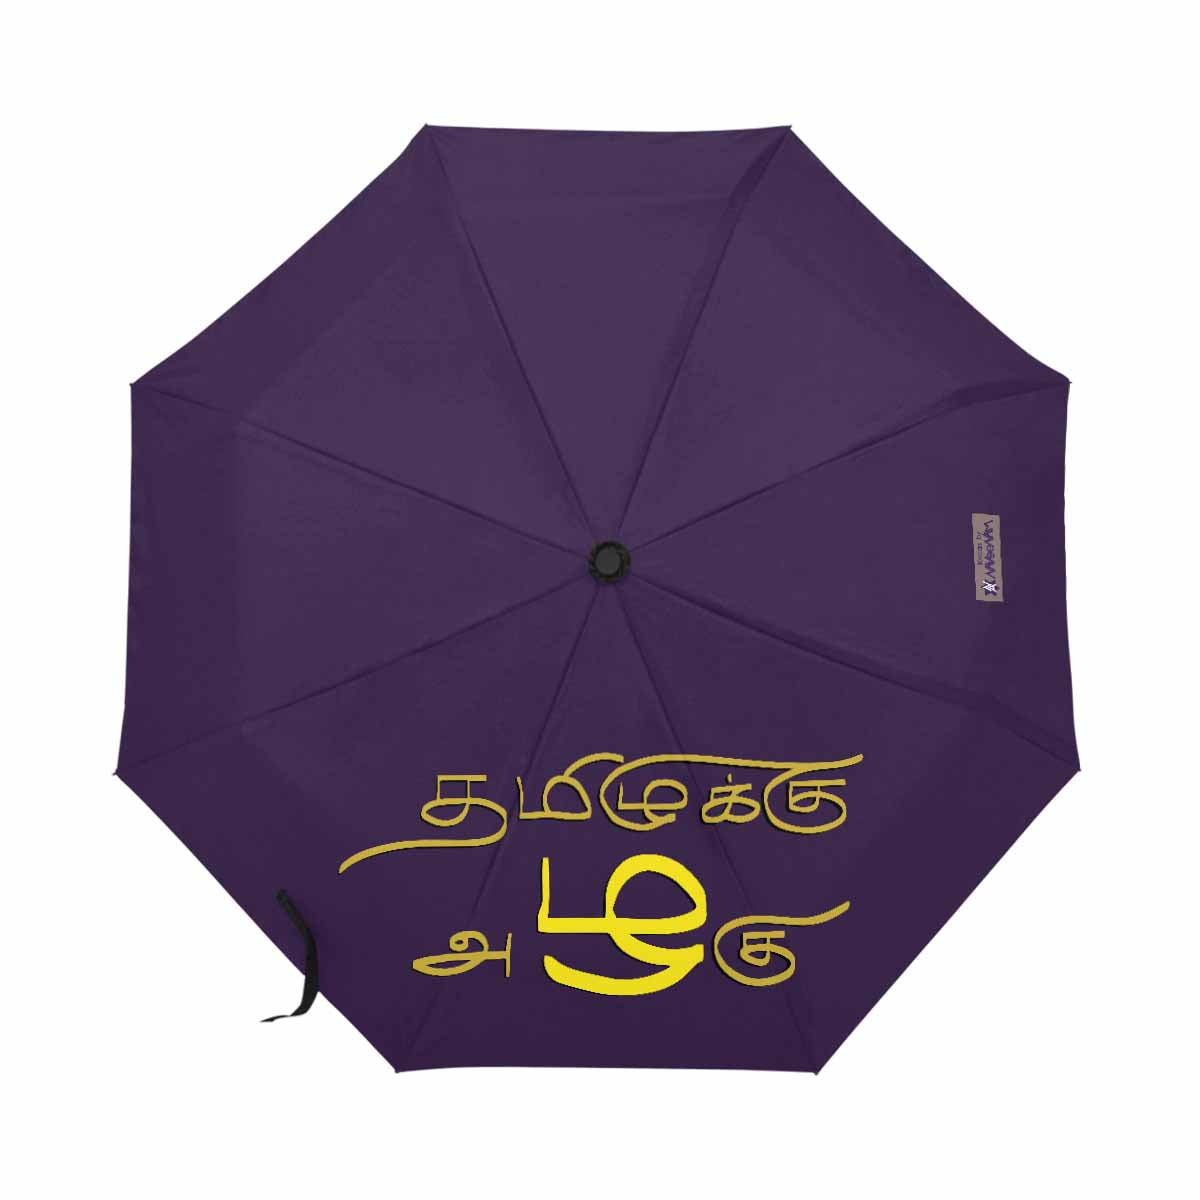 Purple Thamizh automatic foldable umbrella 21 inch anti-uv with Zha design gift idea for friends and family